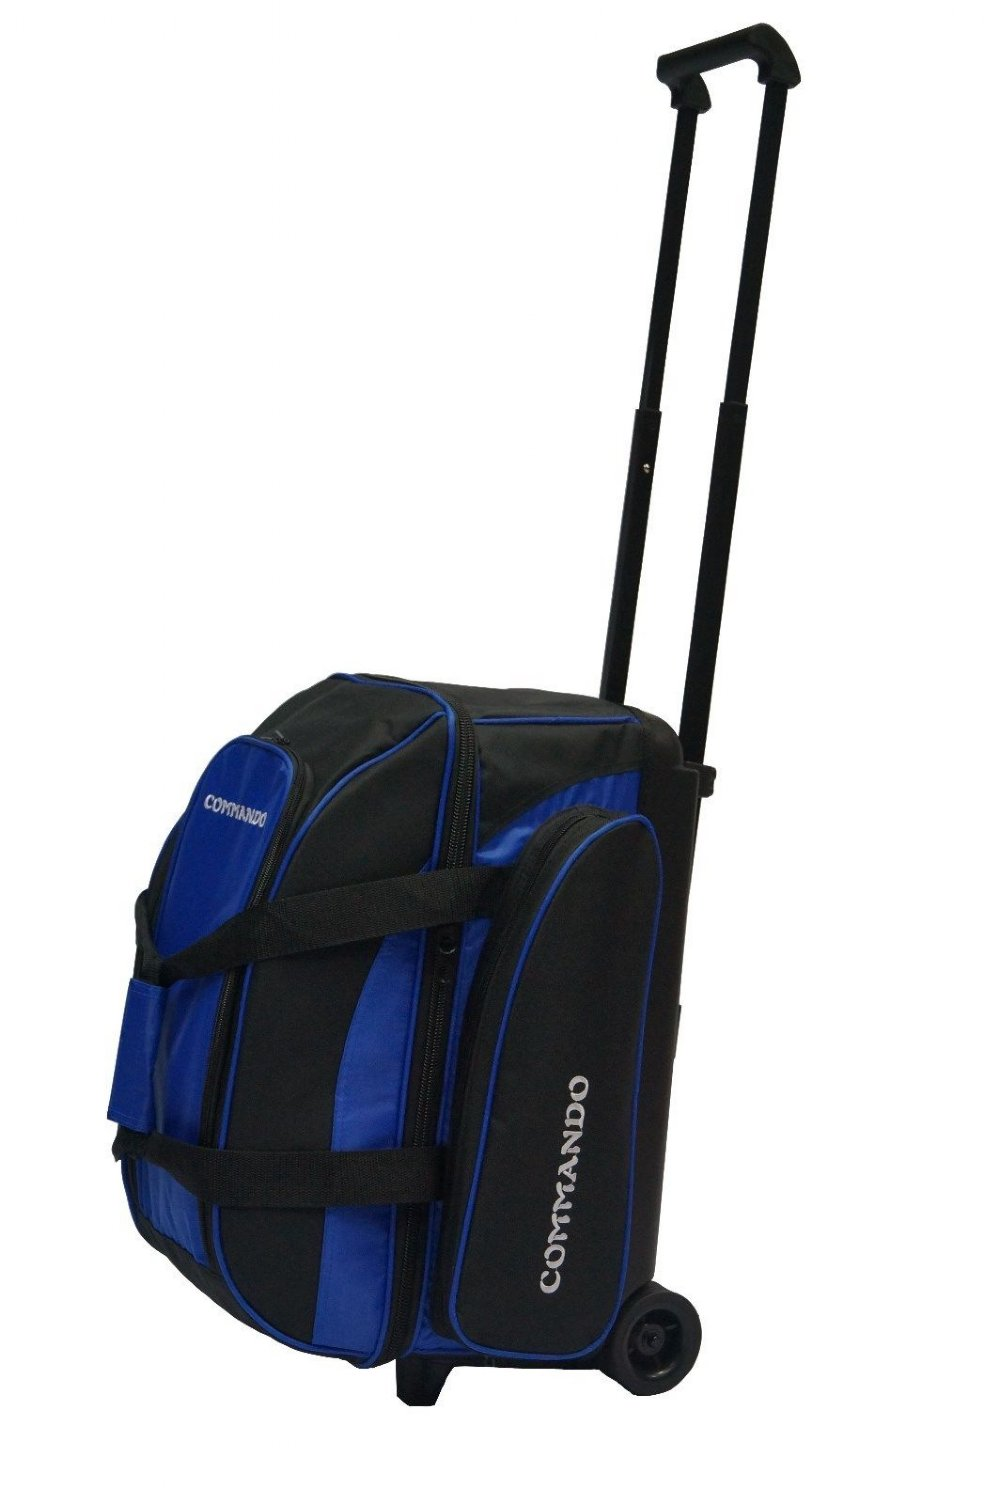 The Commando 2 Ball Double Roller Bowling Bag In Blue Black Free Shipping